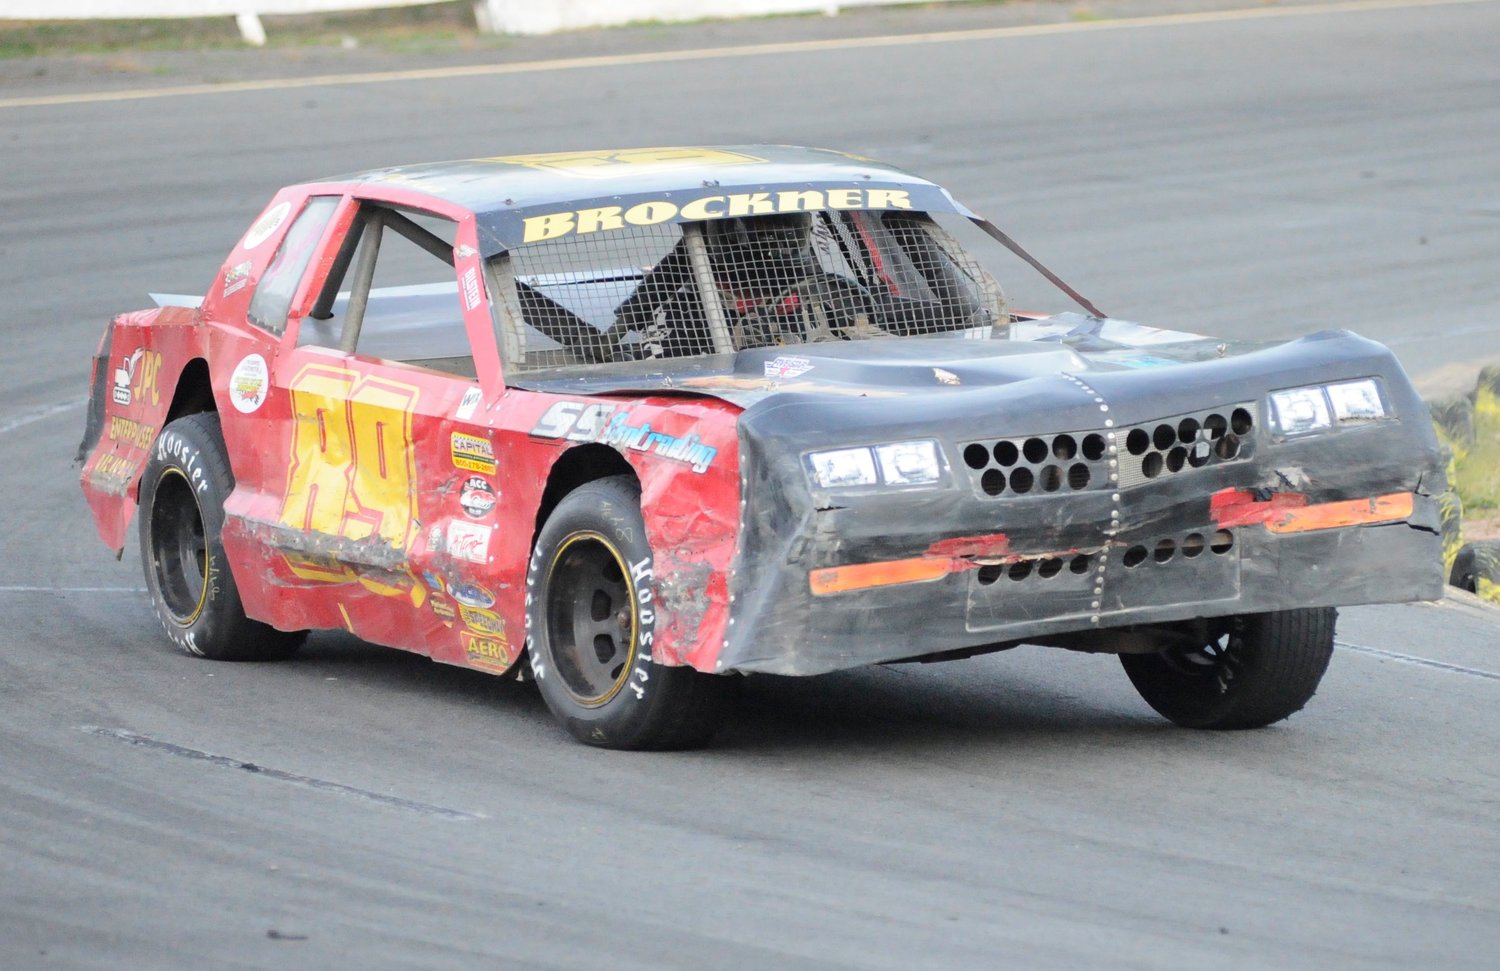 The heat is on. Ryan Brickner at speed in car #89 during an elimination heat.